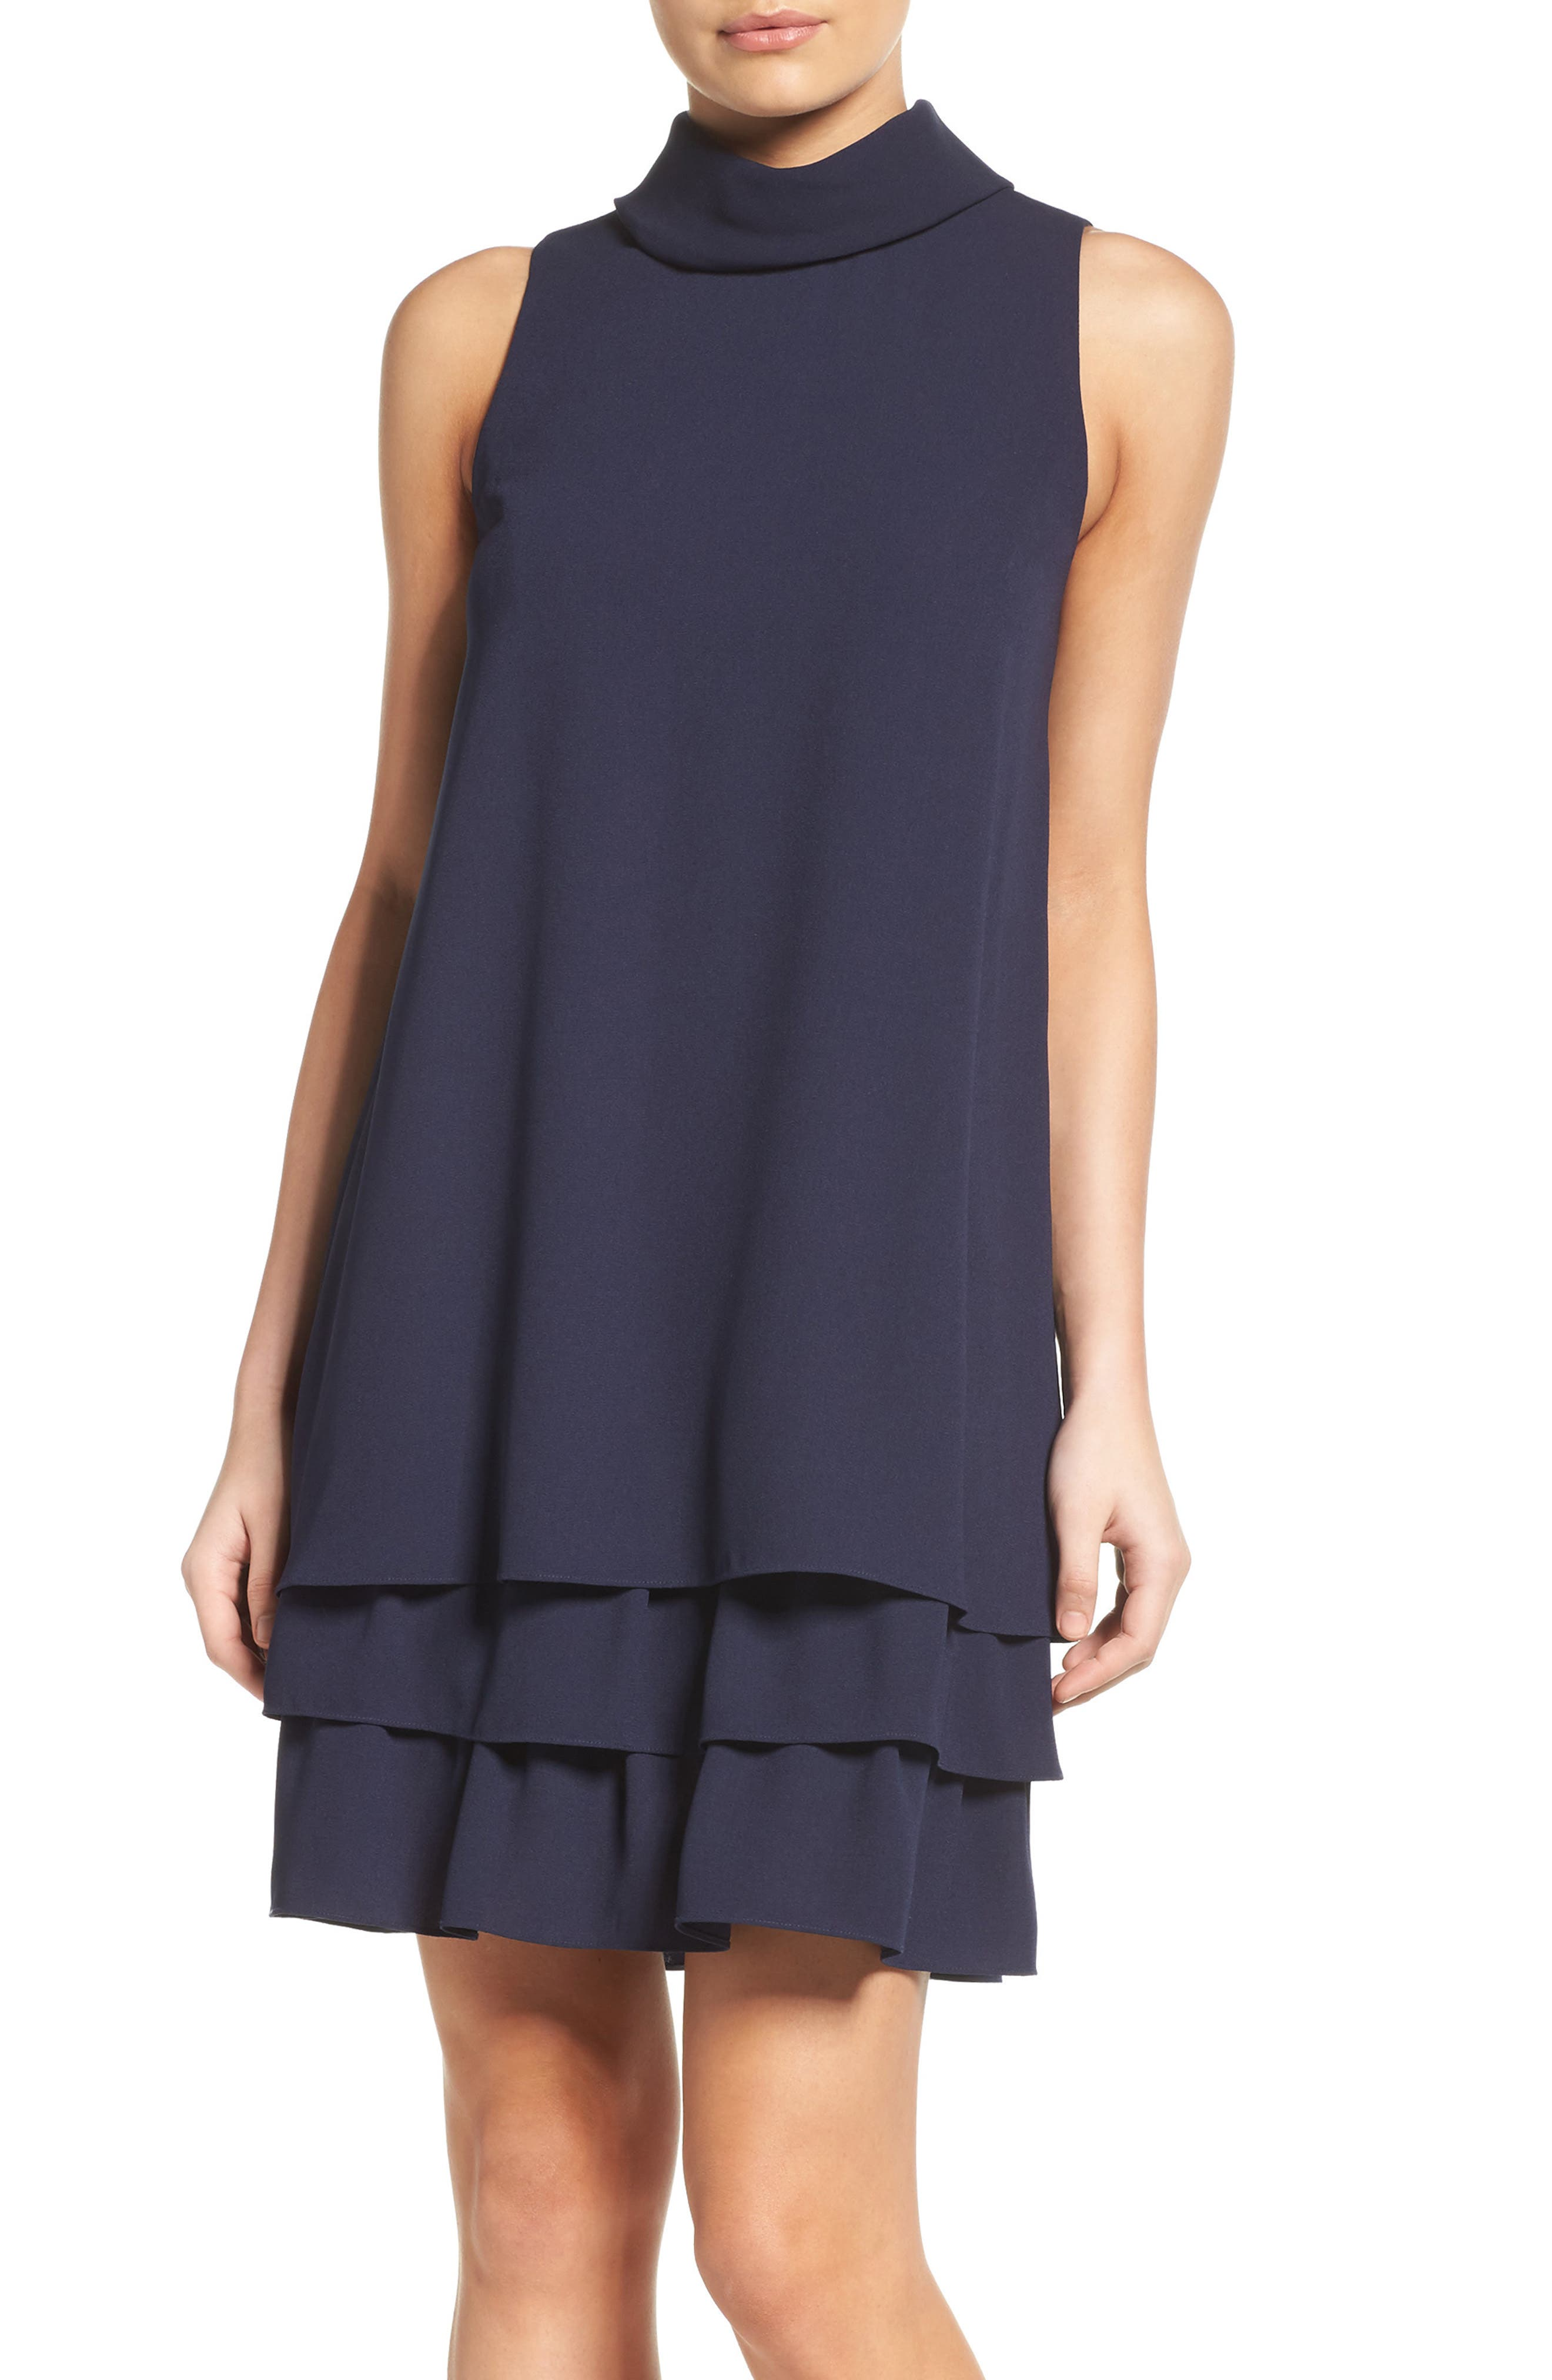 Alternate Image 1 Selected - Vince Camuto Roll Neck Ruffle Dress